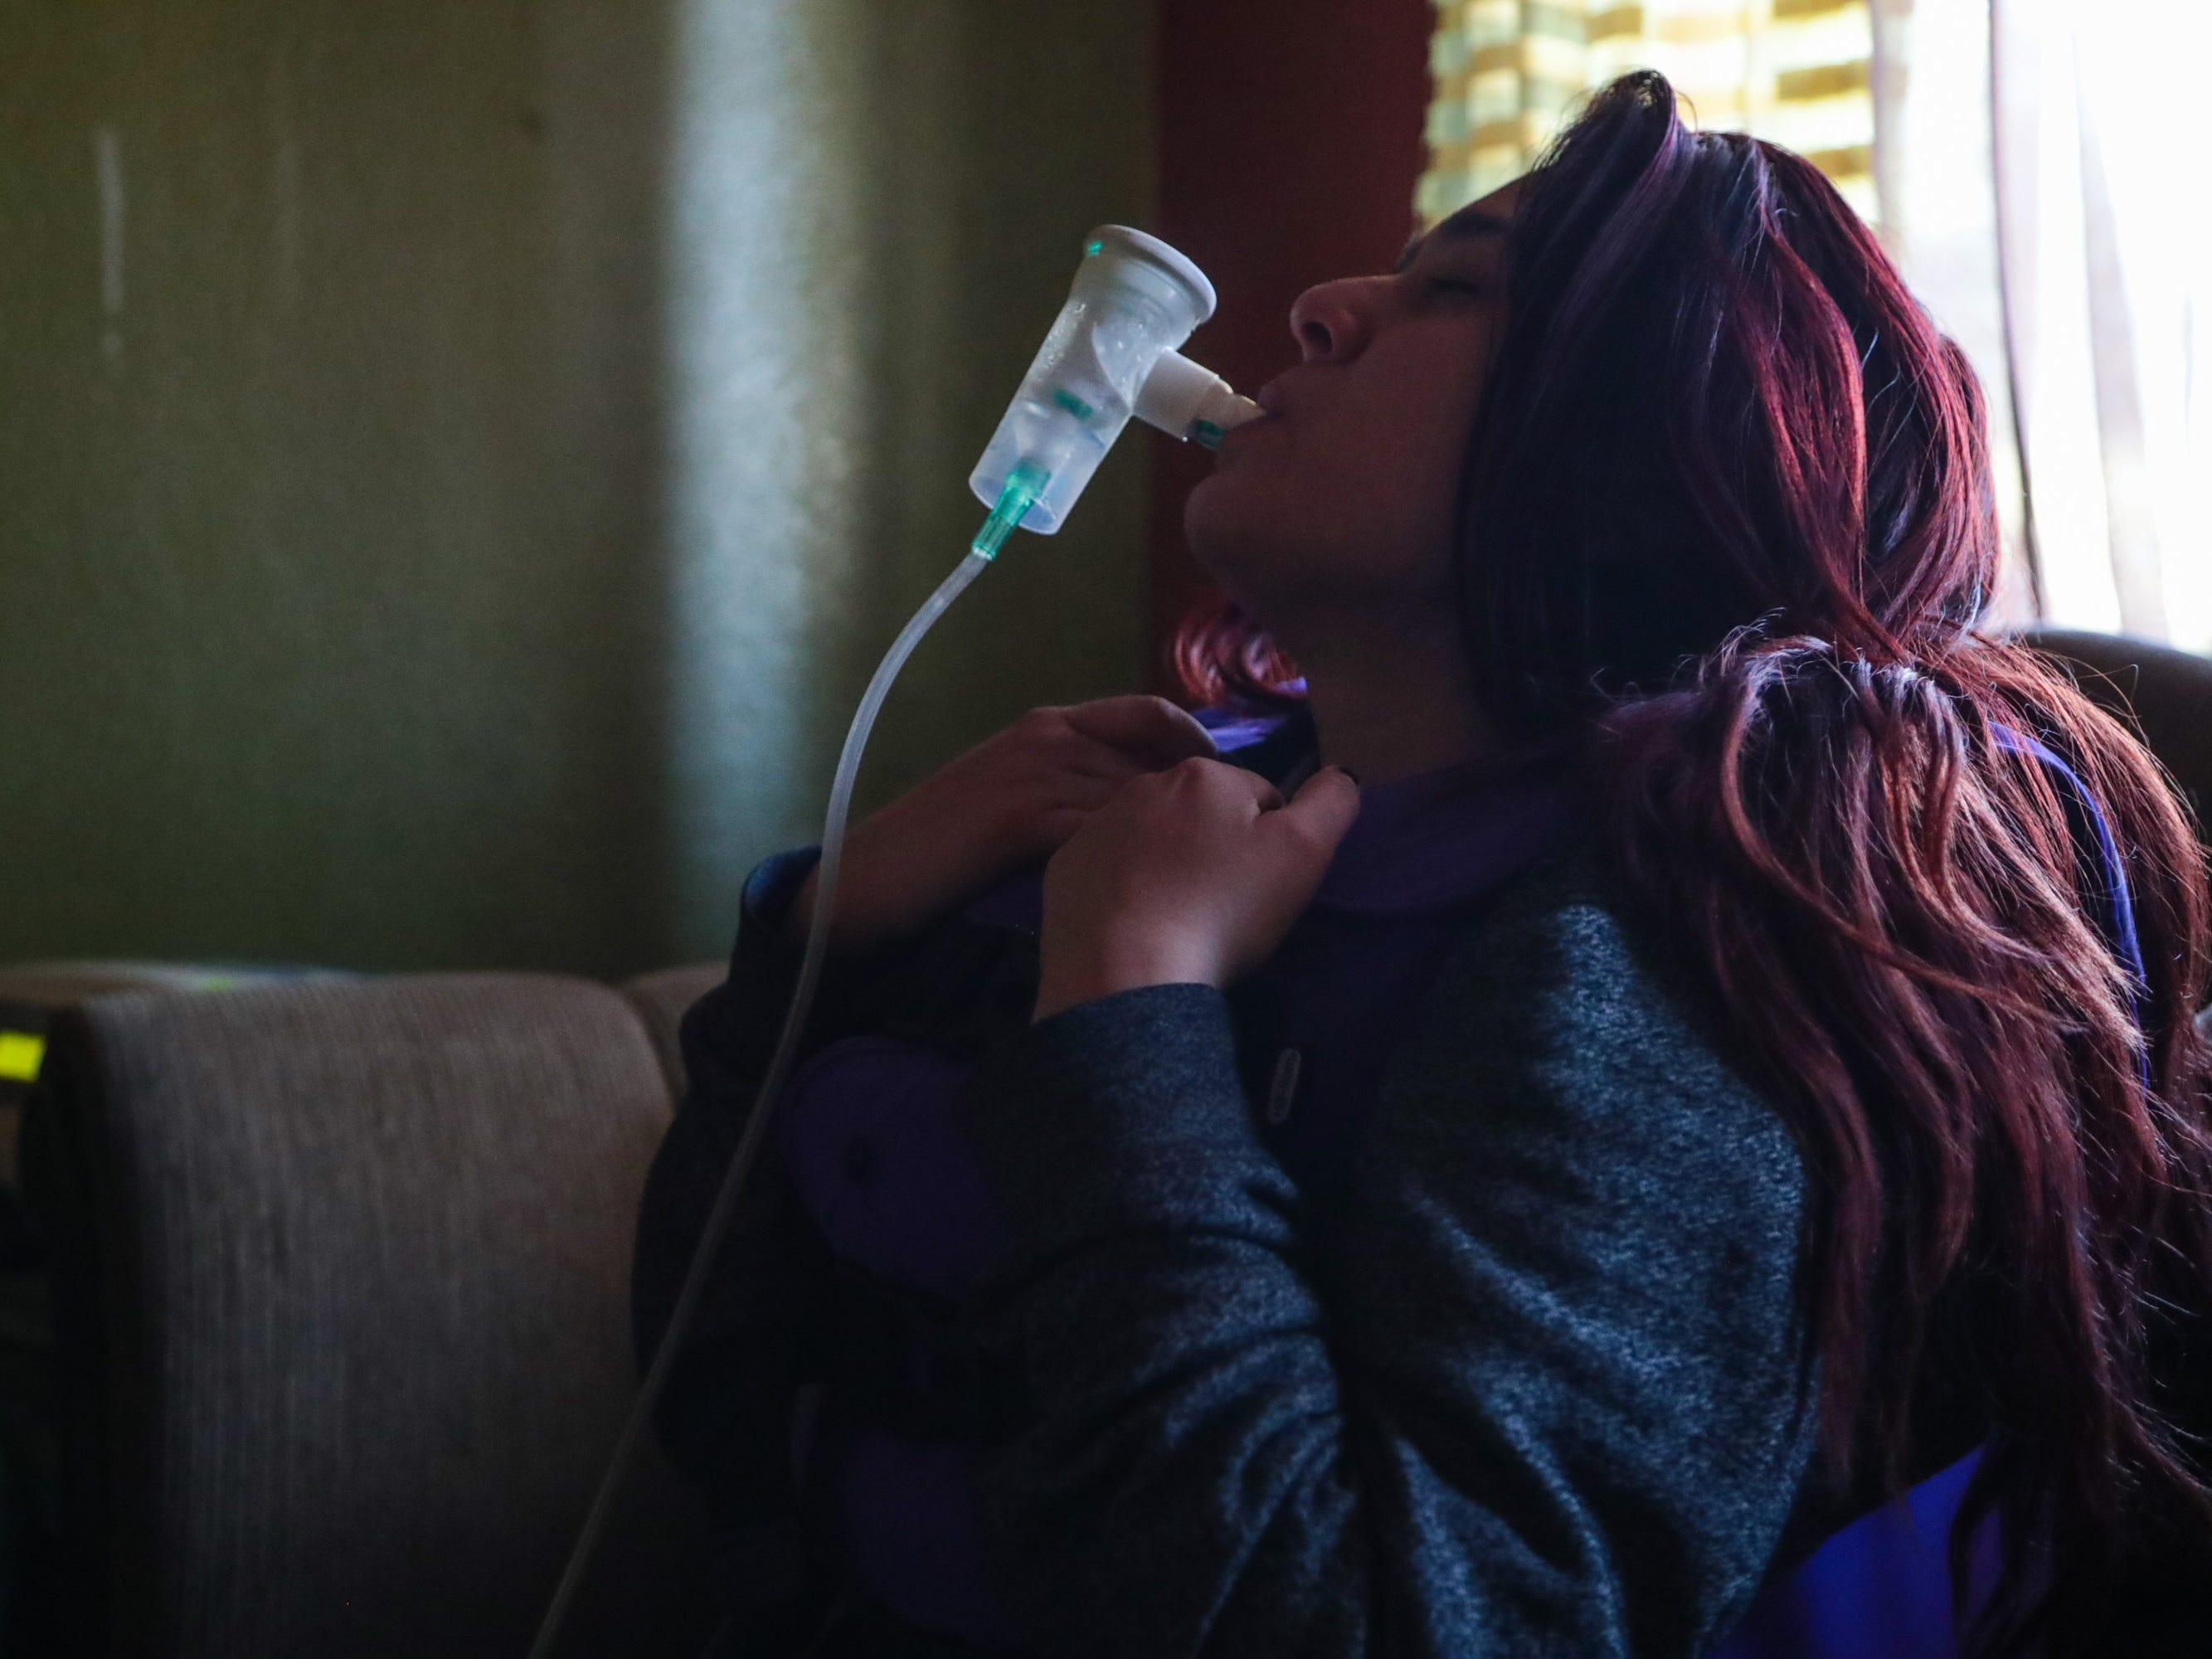 Michelle Dugan-Delgado uses a neublizer treatment and a vest airway-clearing system twice a day to improve her lung functioning and prevent asthma attacks.